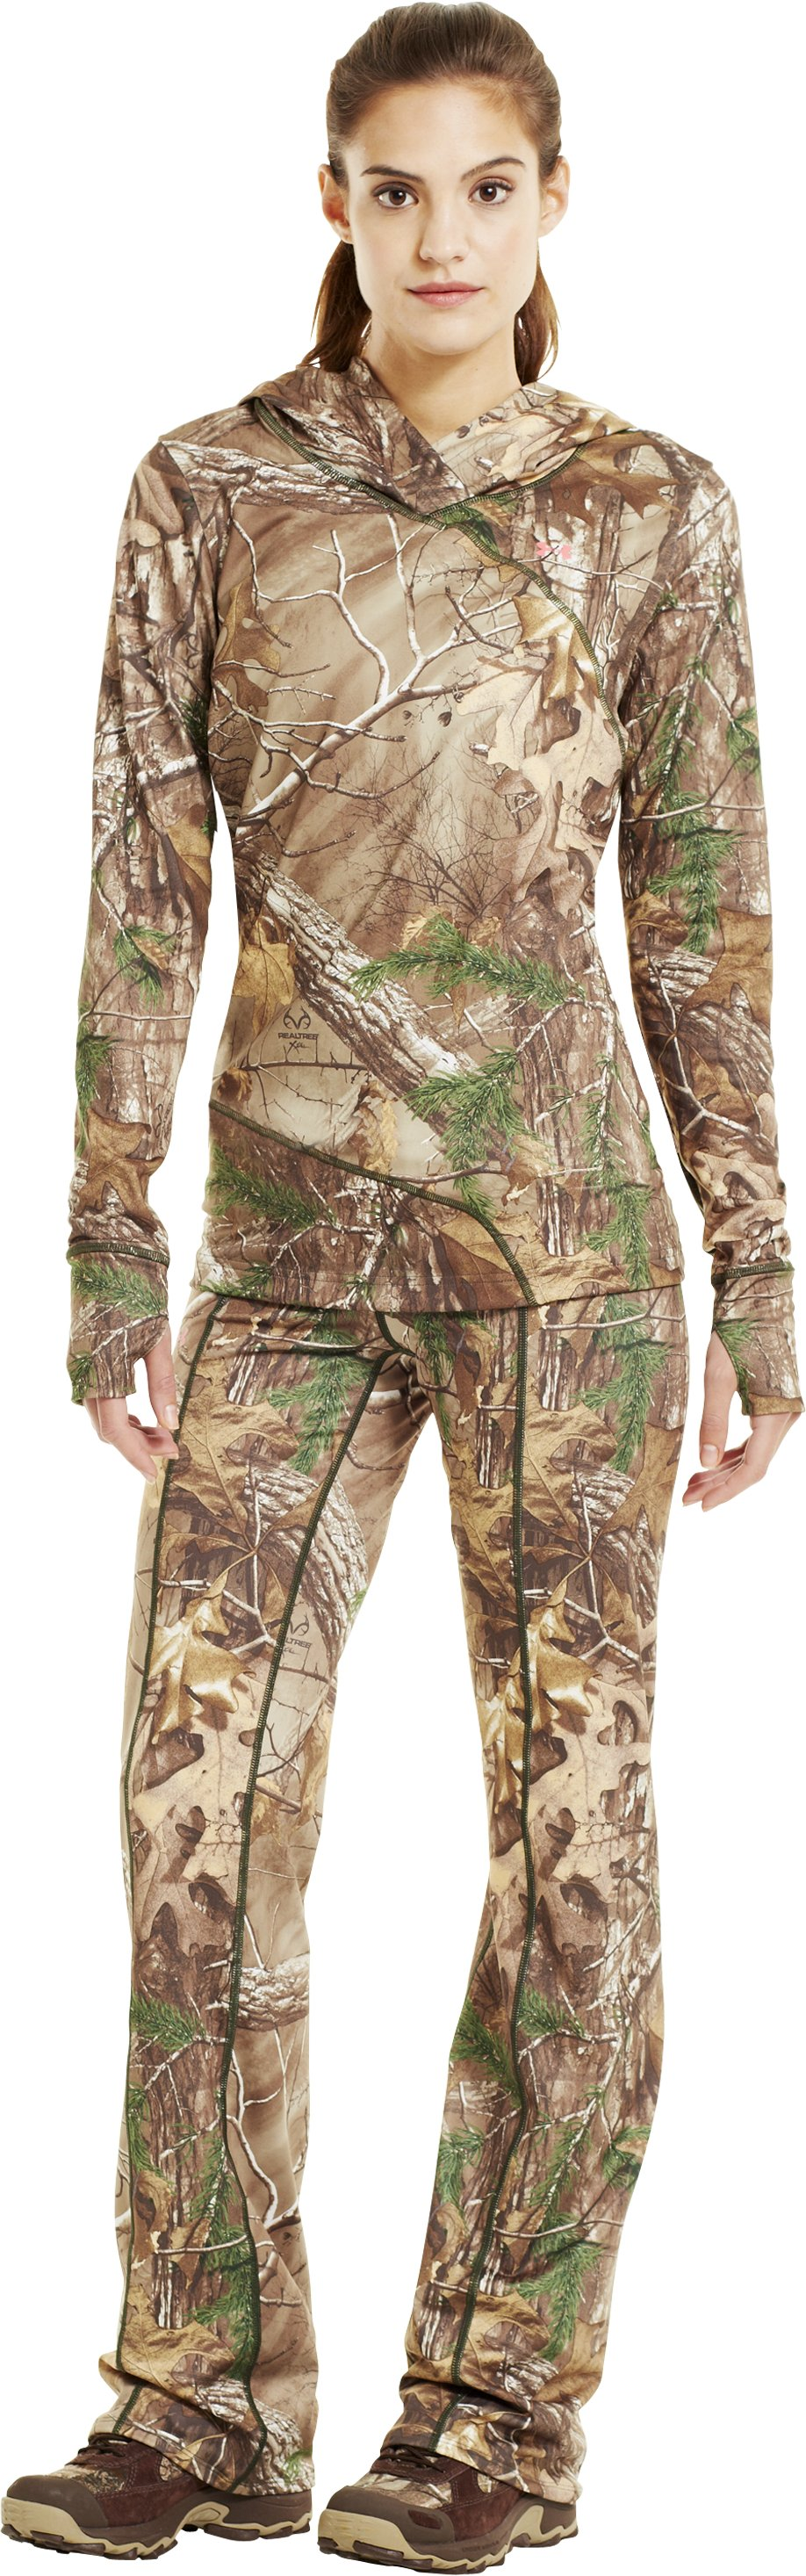 Women's EVO Scent Control Pant, REALTREE AP-XTRA, Front